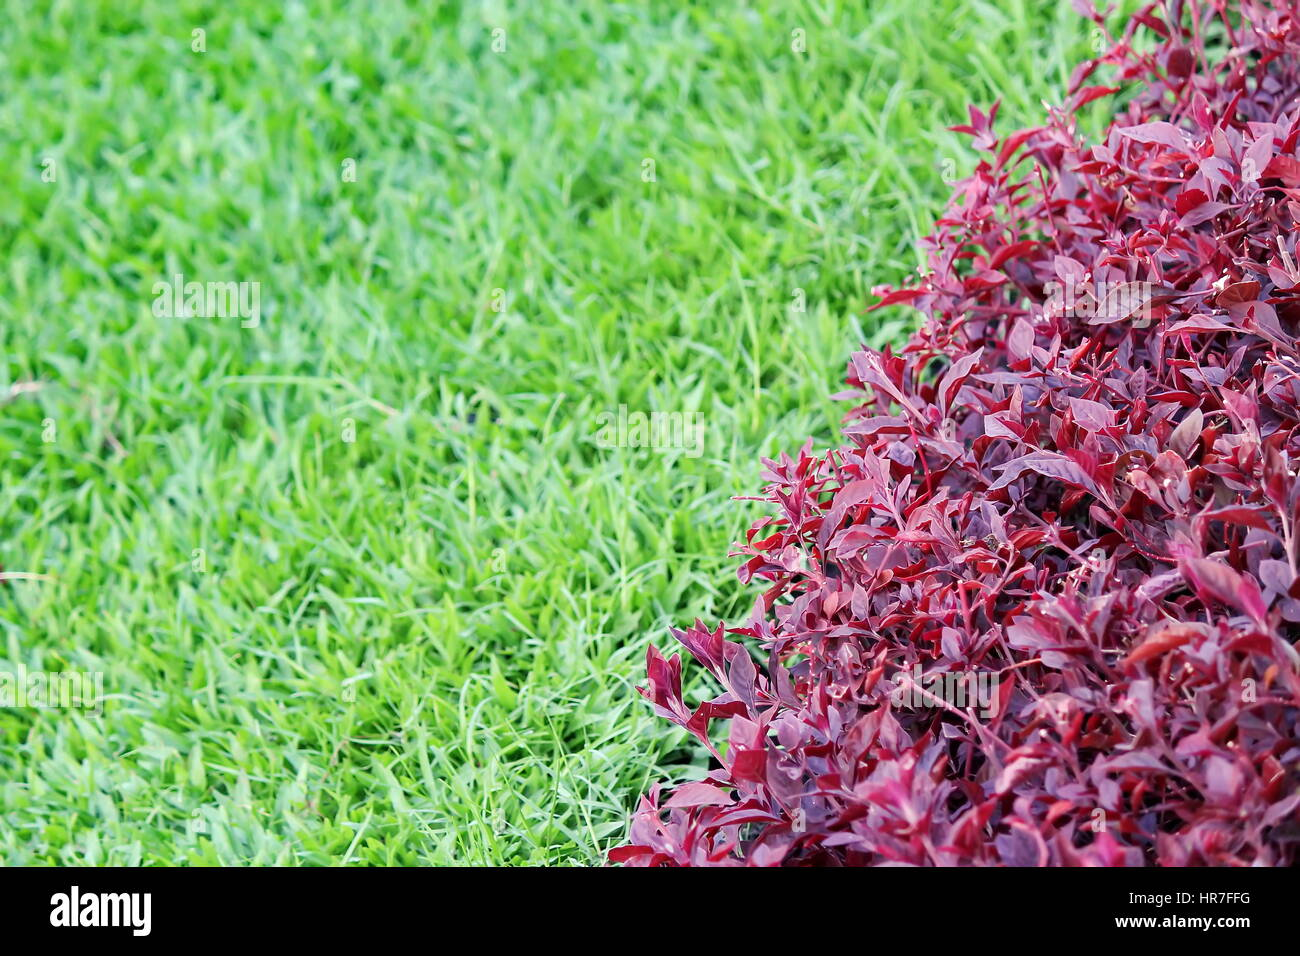 Two Tone Grasses in a Public Park - Stock Image